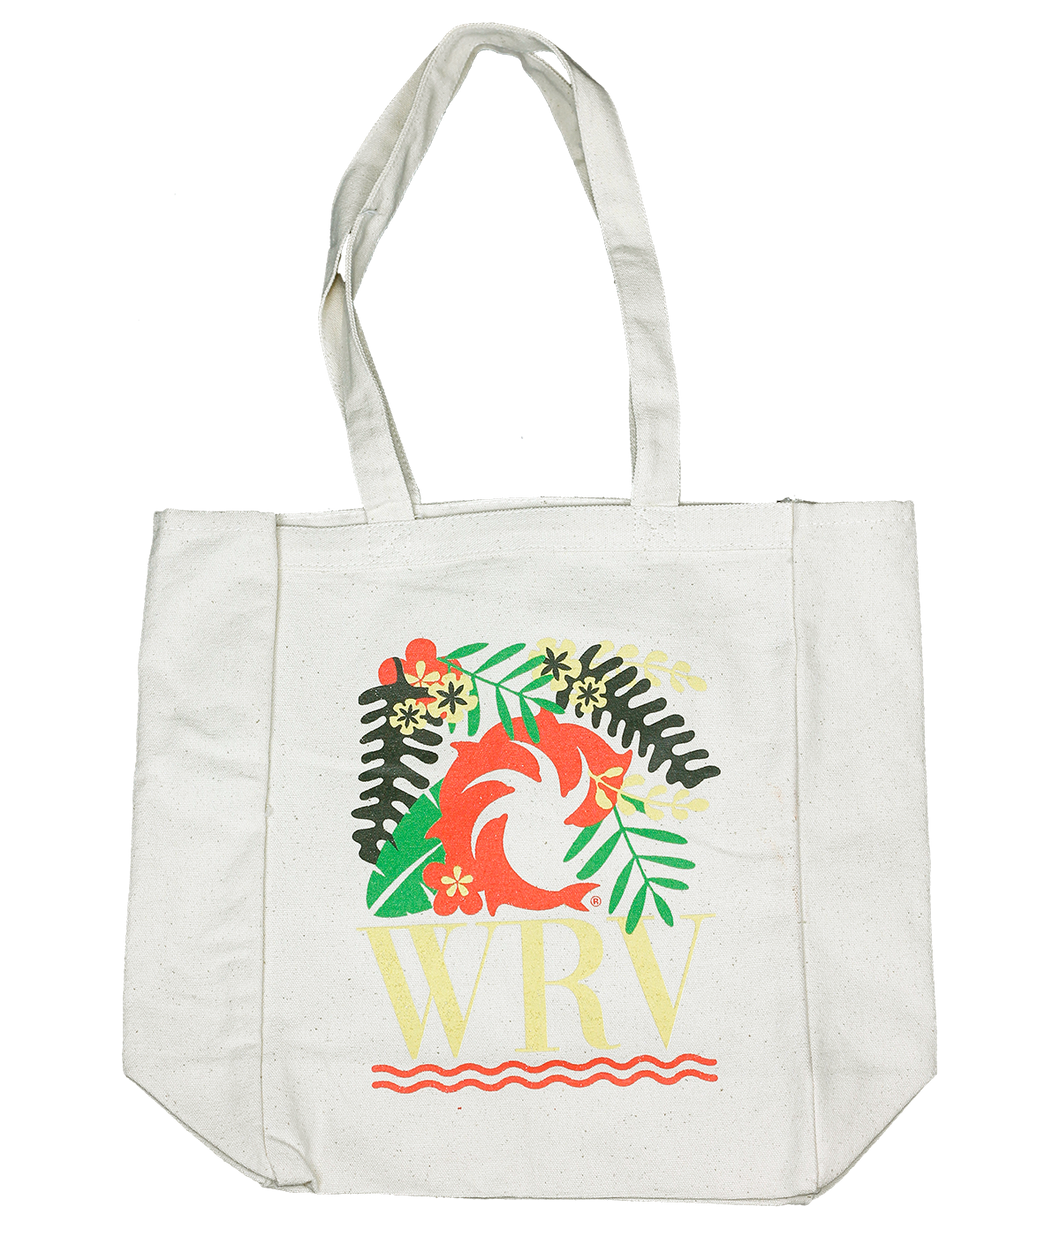 Vice City Canvas Tote